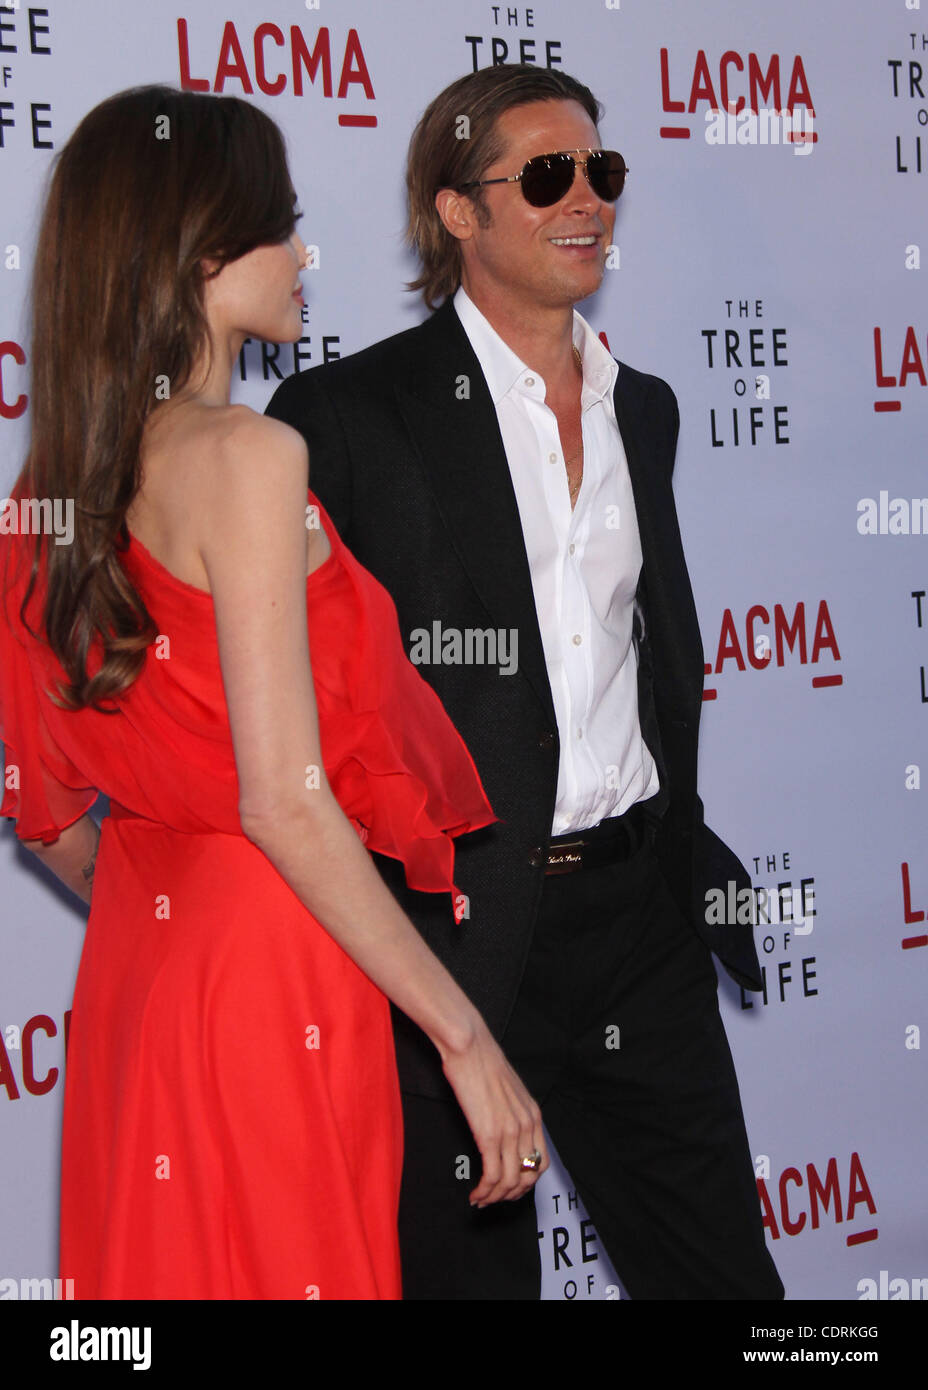 May 24, 2011 - Los Angeles, California, U.S. - ANGELINA JOLIE & BRAD PITT arrives for the premiere of the film - Stock Image